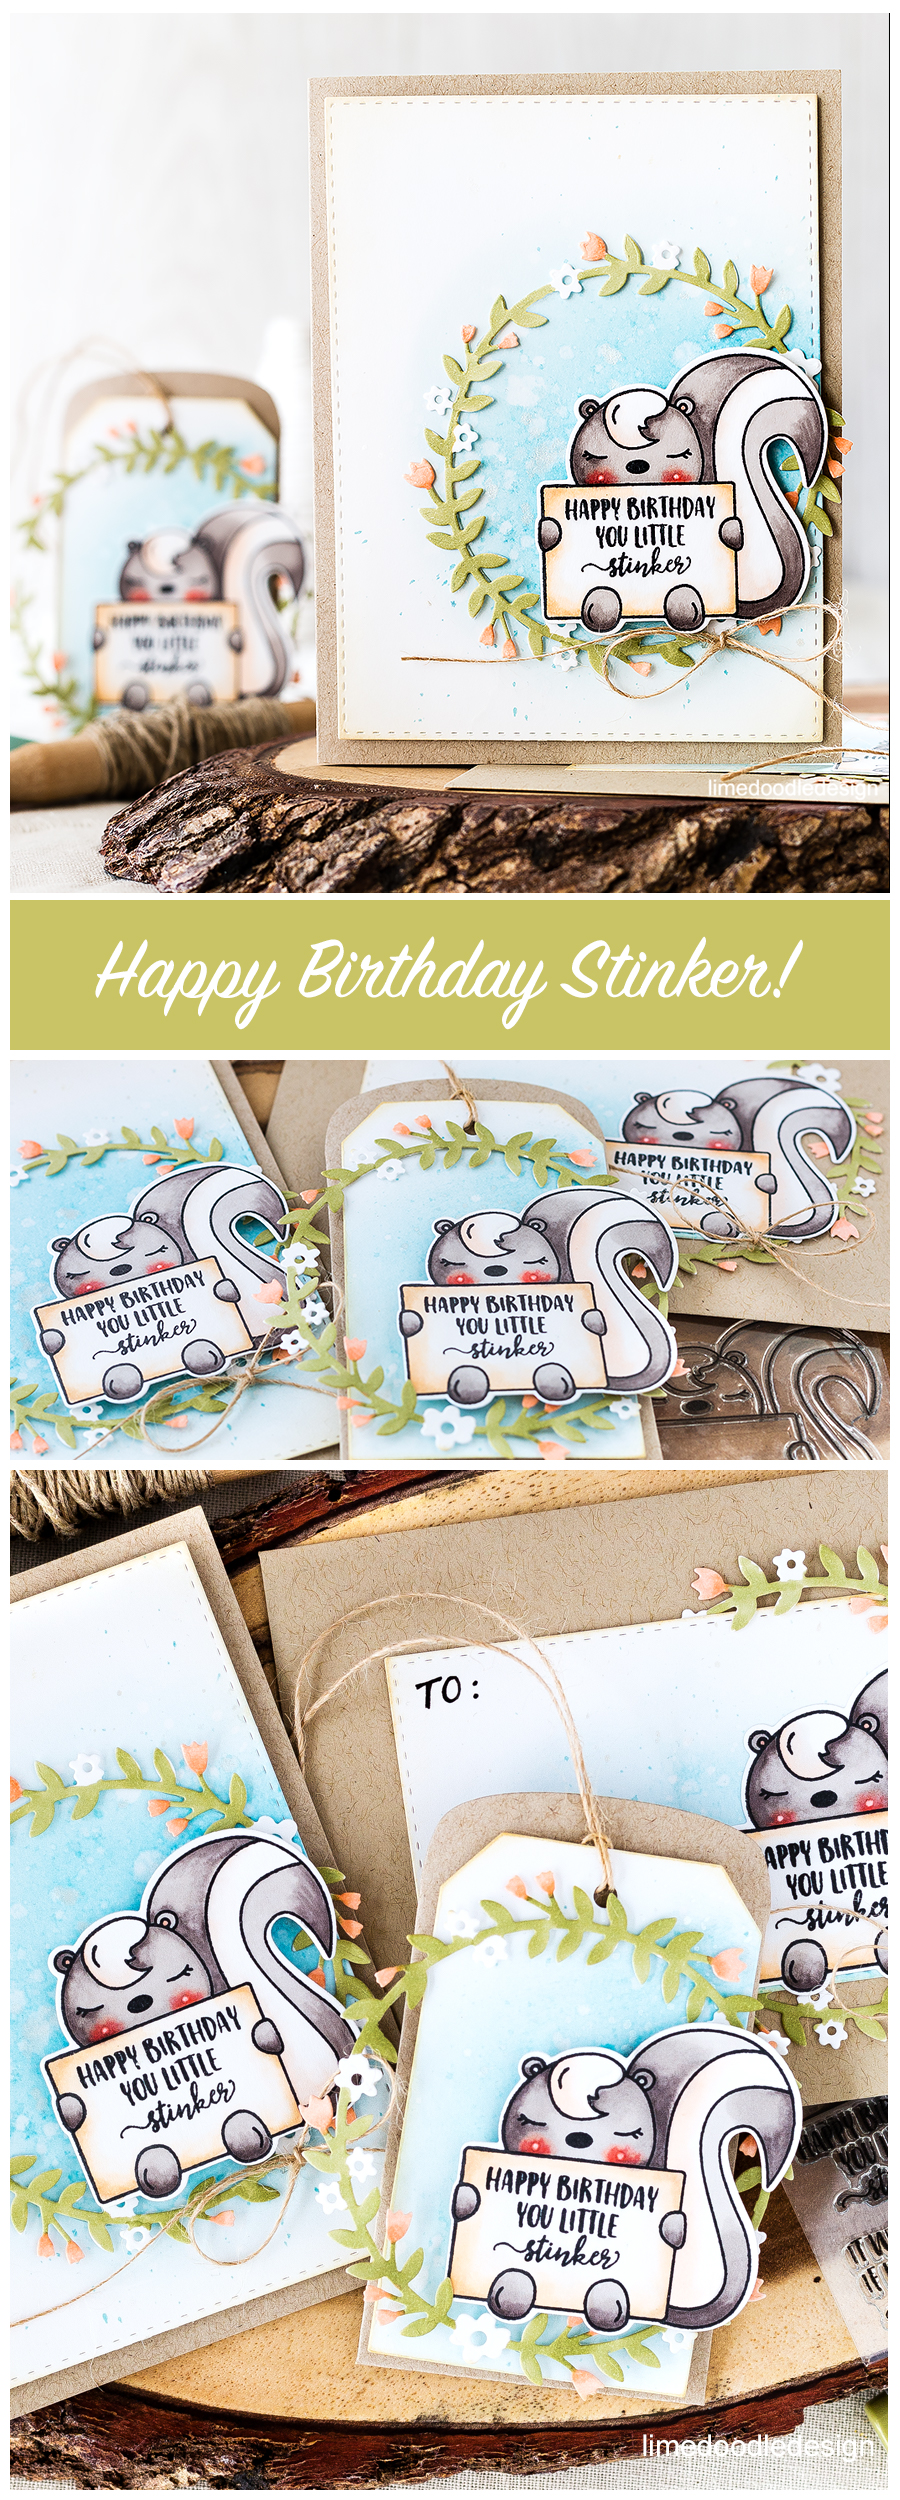 Happy Birthday You Little Stinker! Find out more about this cute card with matching envelope and tag by clicking on the following link: http://limedoodledesign.com/2016/08/happy-birthday-you-little-stinker/